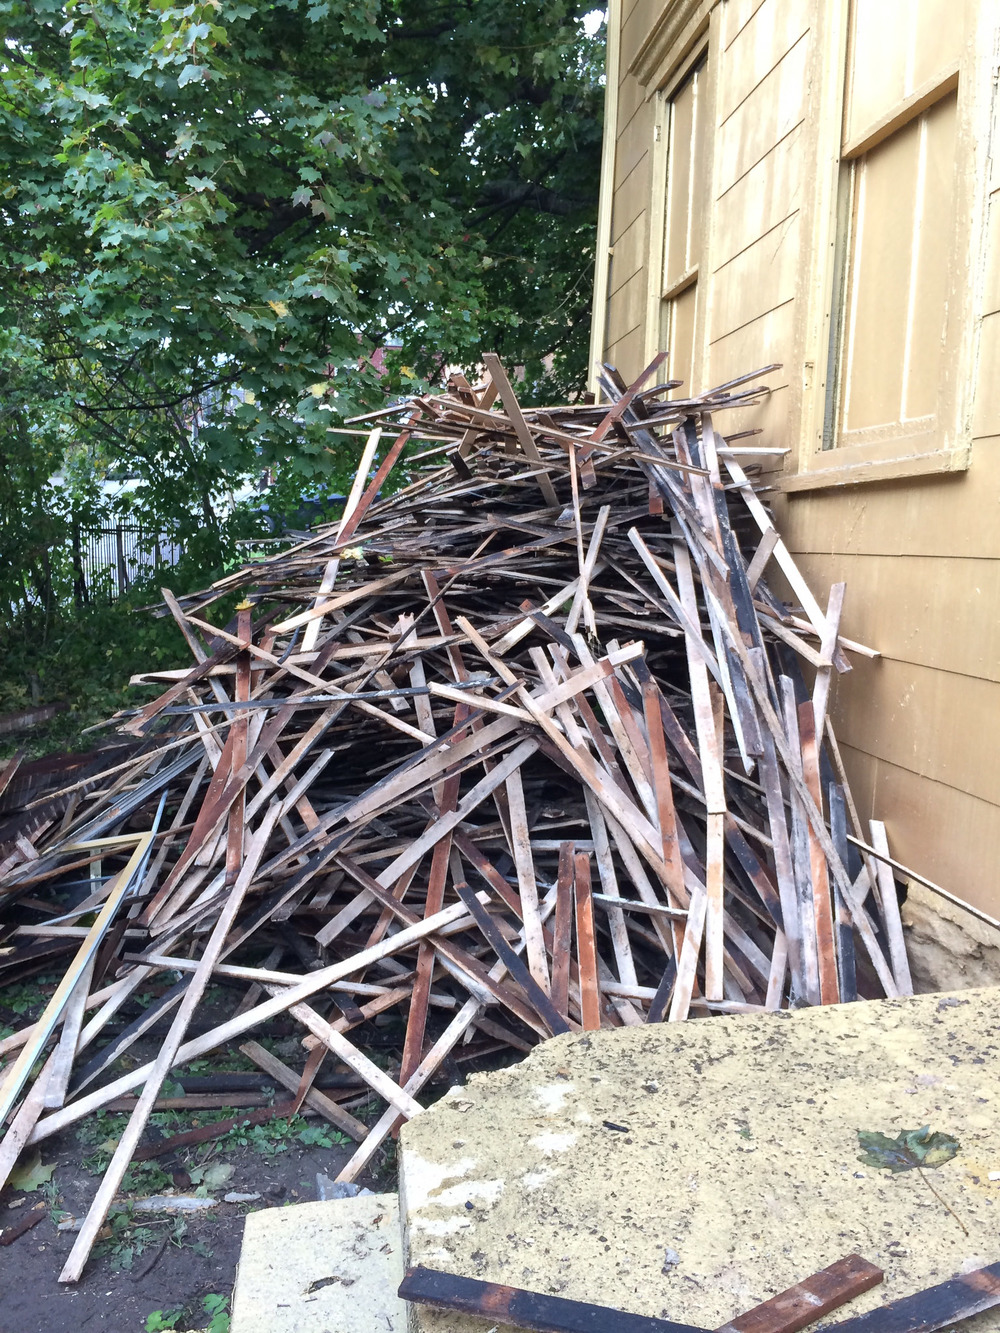 A never ending pile of lath.